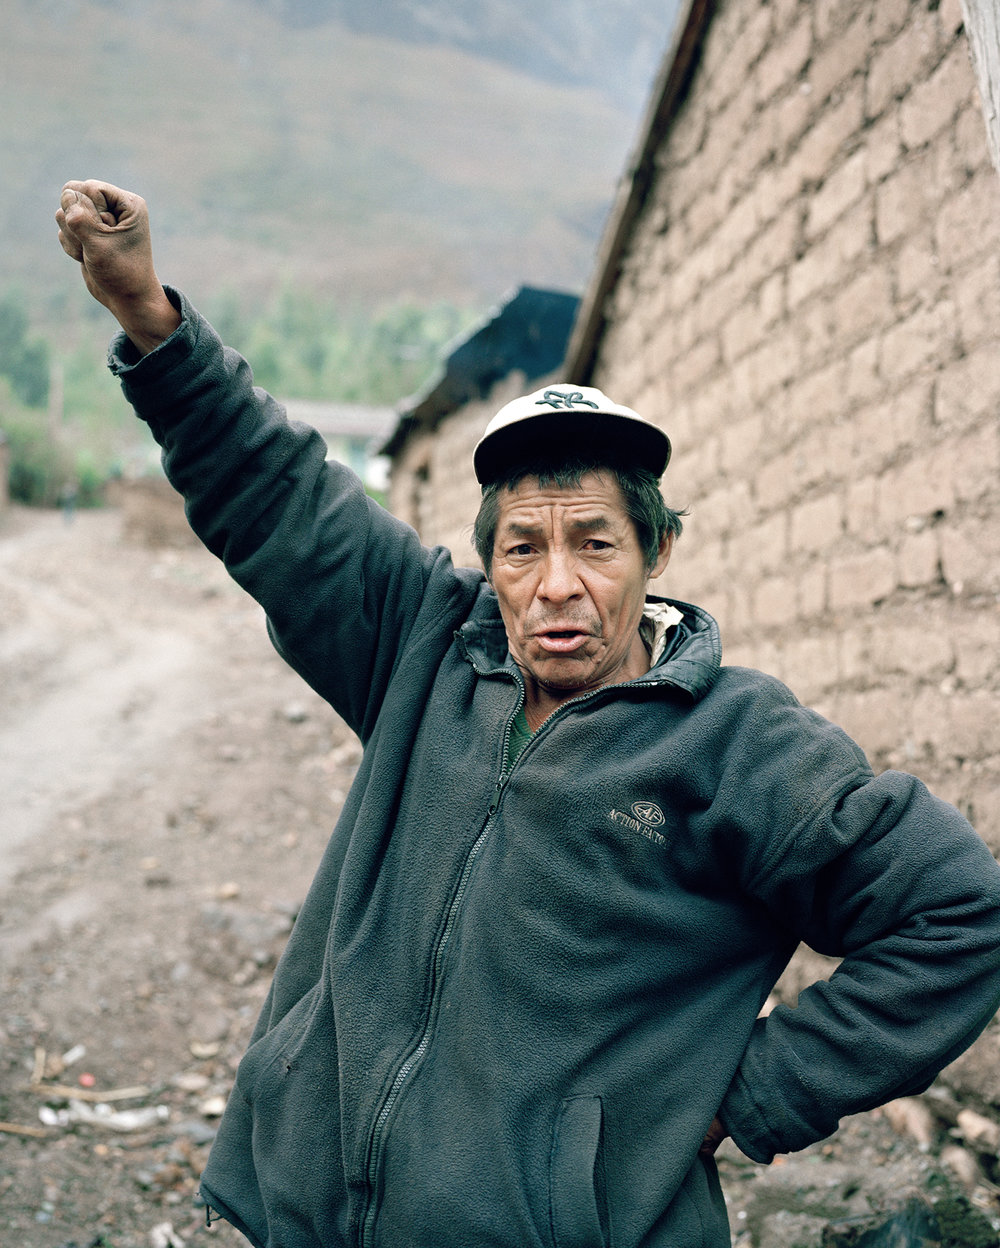 Julian-Ward-Peru-Portrait.jpg